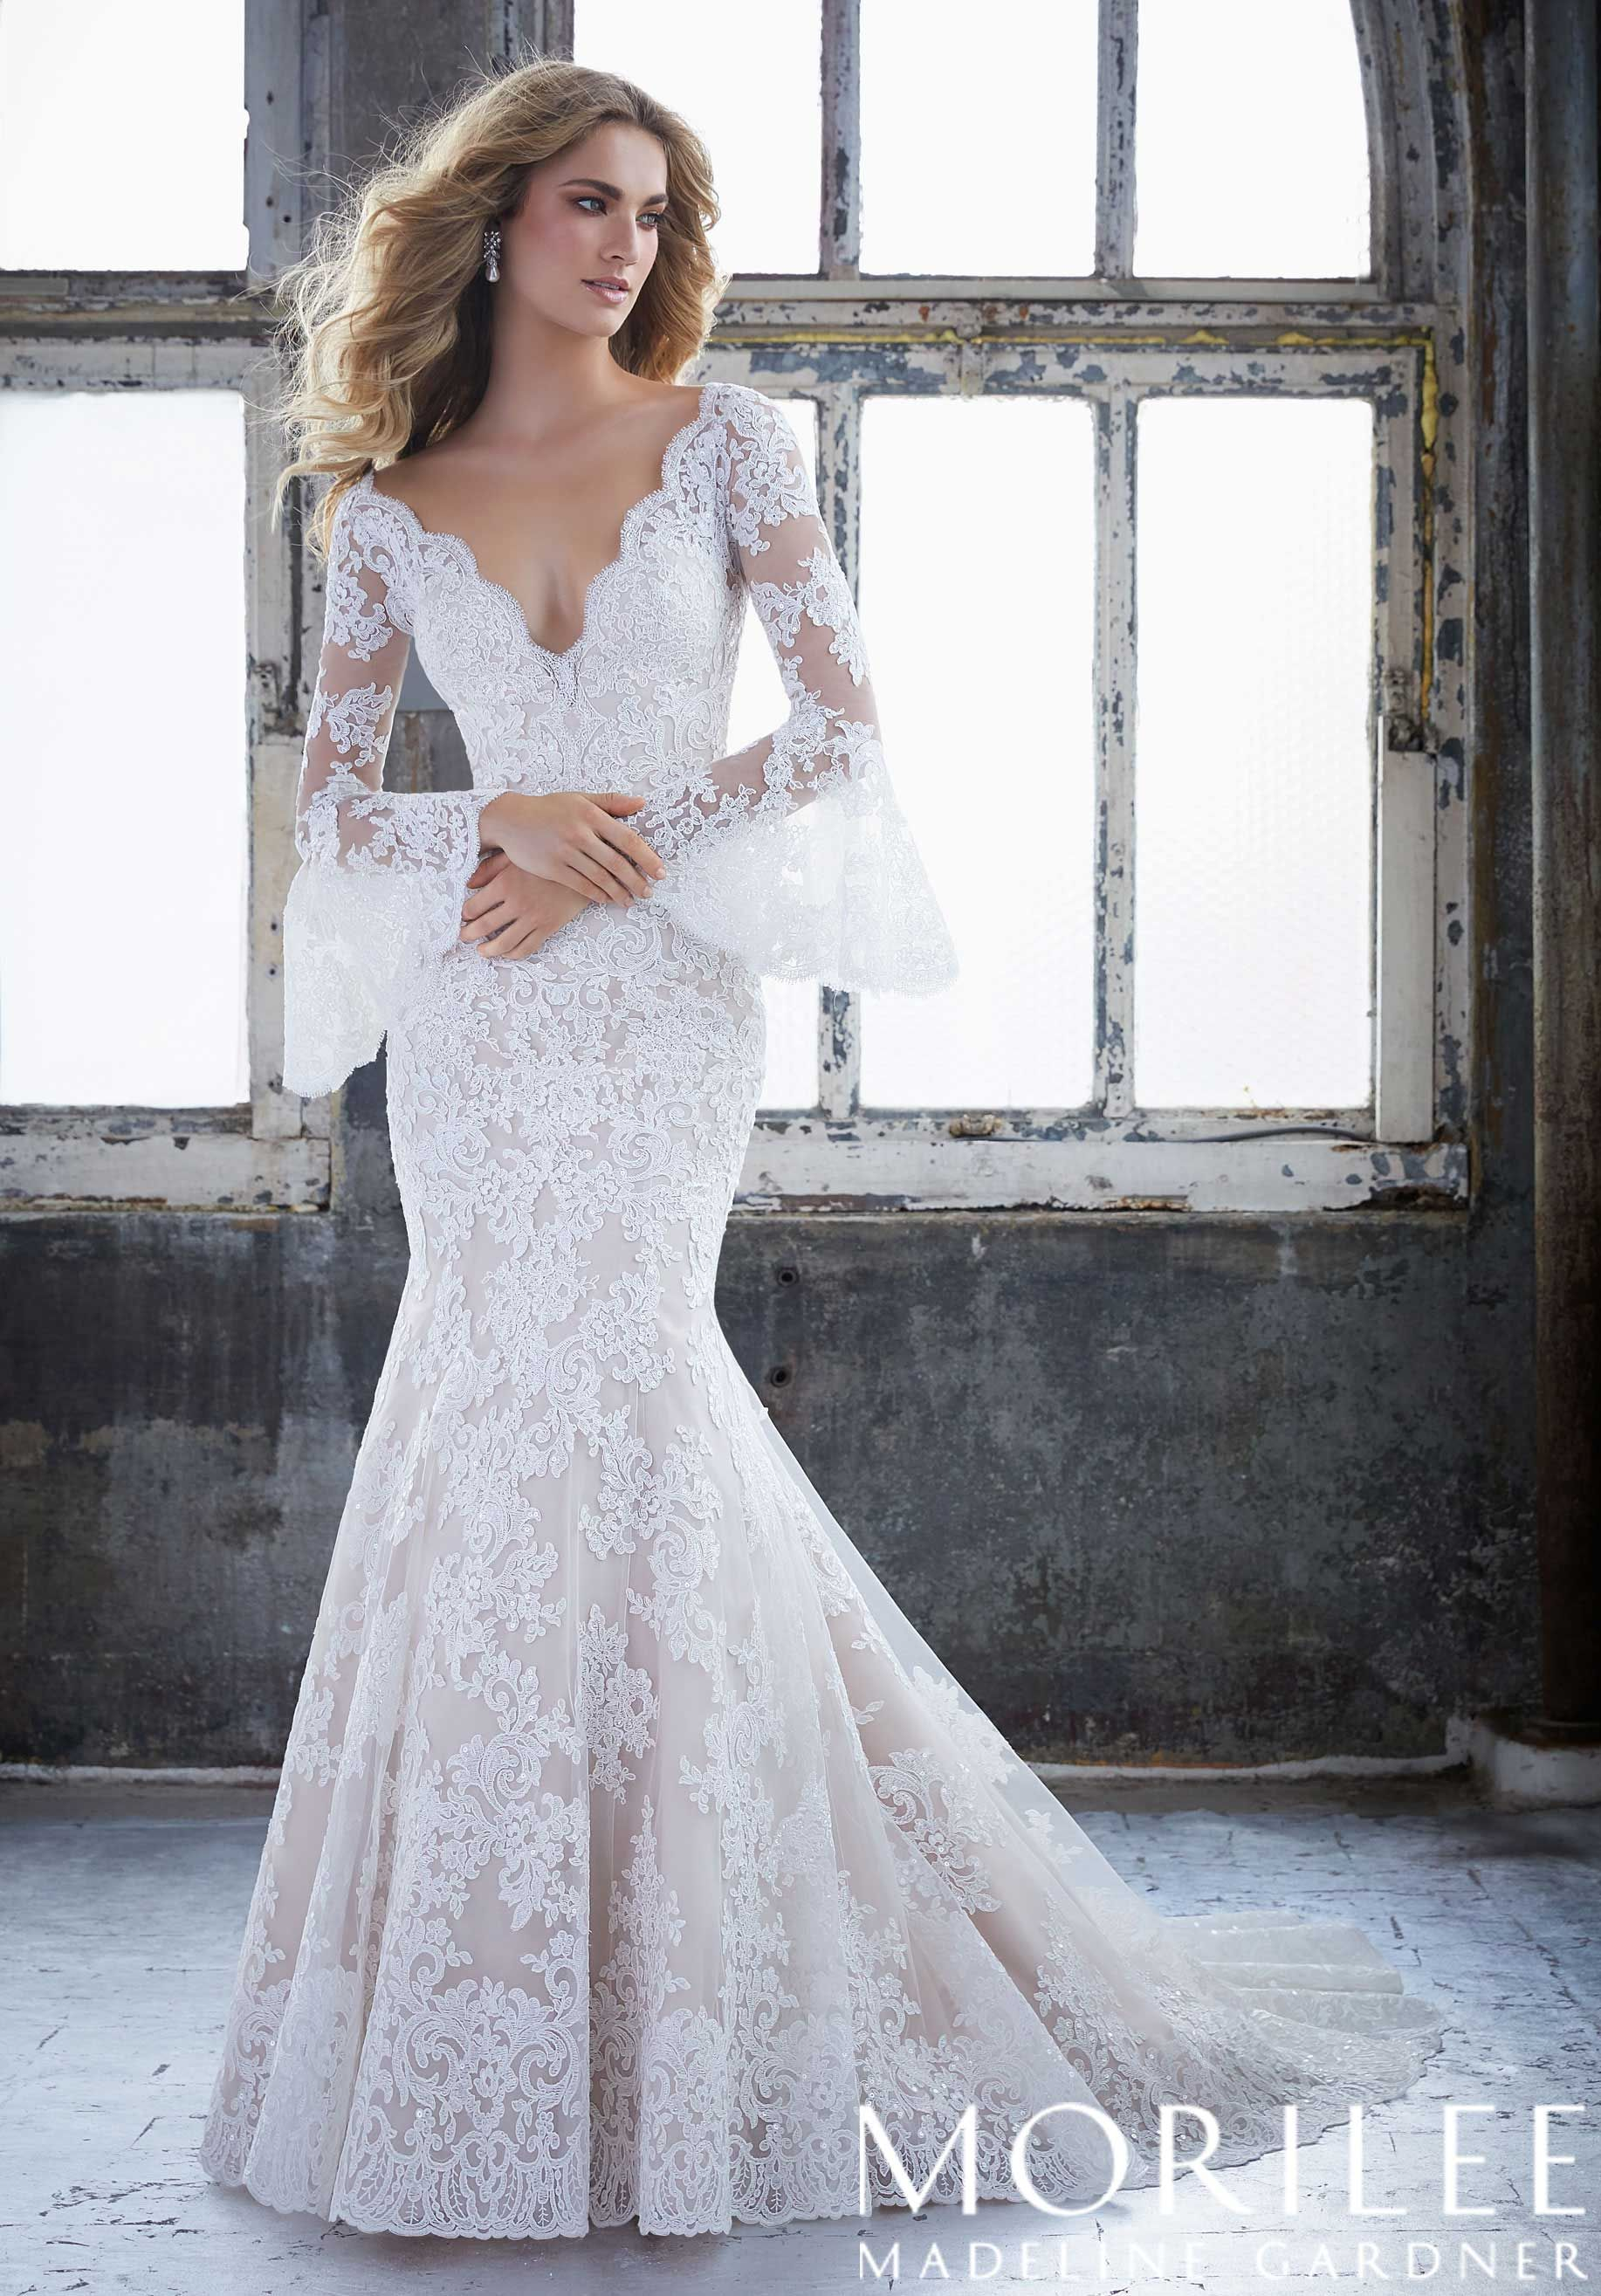 Kendall Wedding Dress Morilee Fit And Flare Wedding Dress Wedding Dress Long Sleeve Bridal Dresses [ 2630 x 1834 Pixel ]